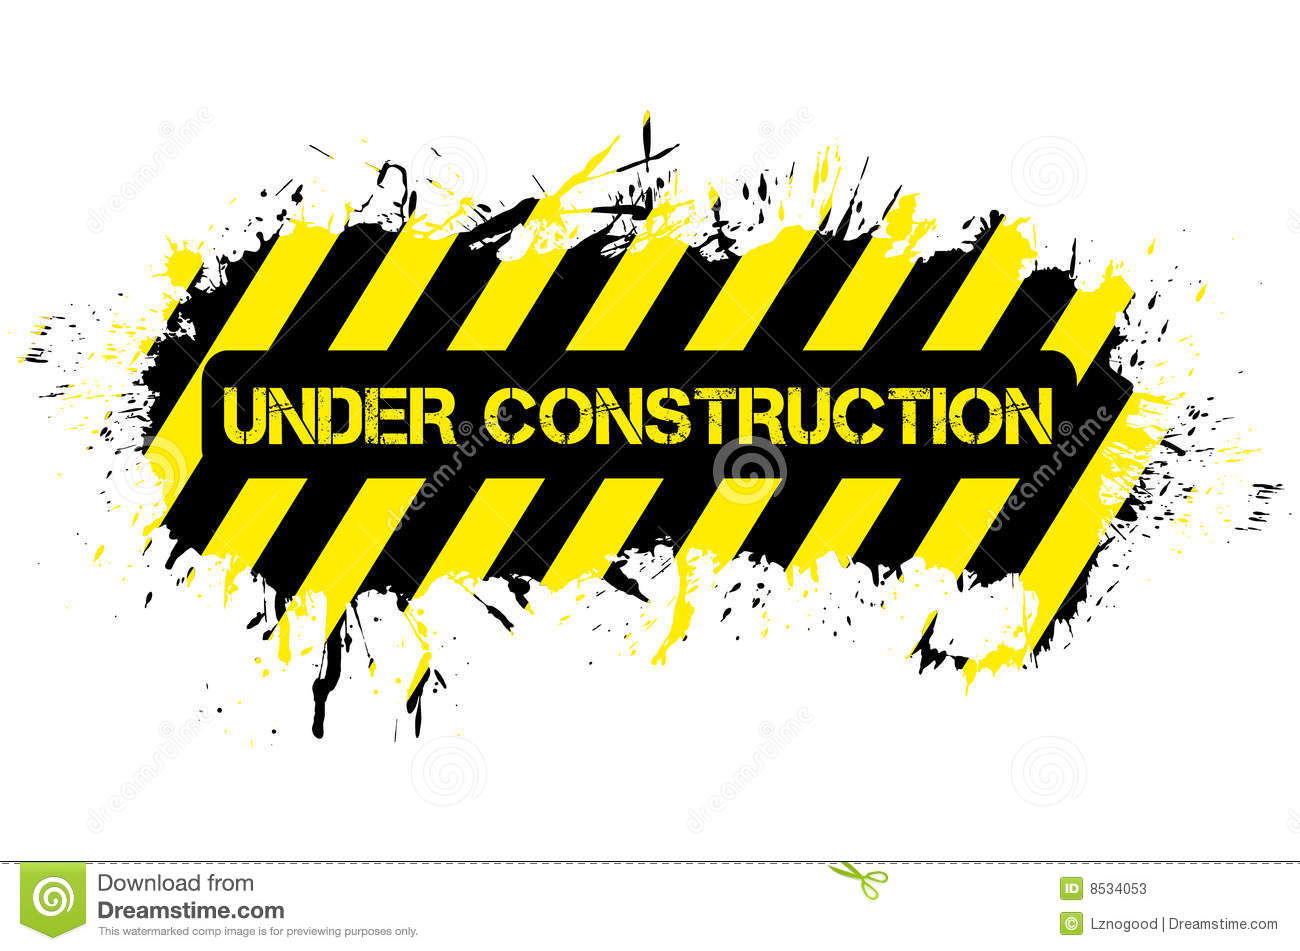 Grunge under construction stock vector. Illustration of estate.